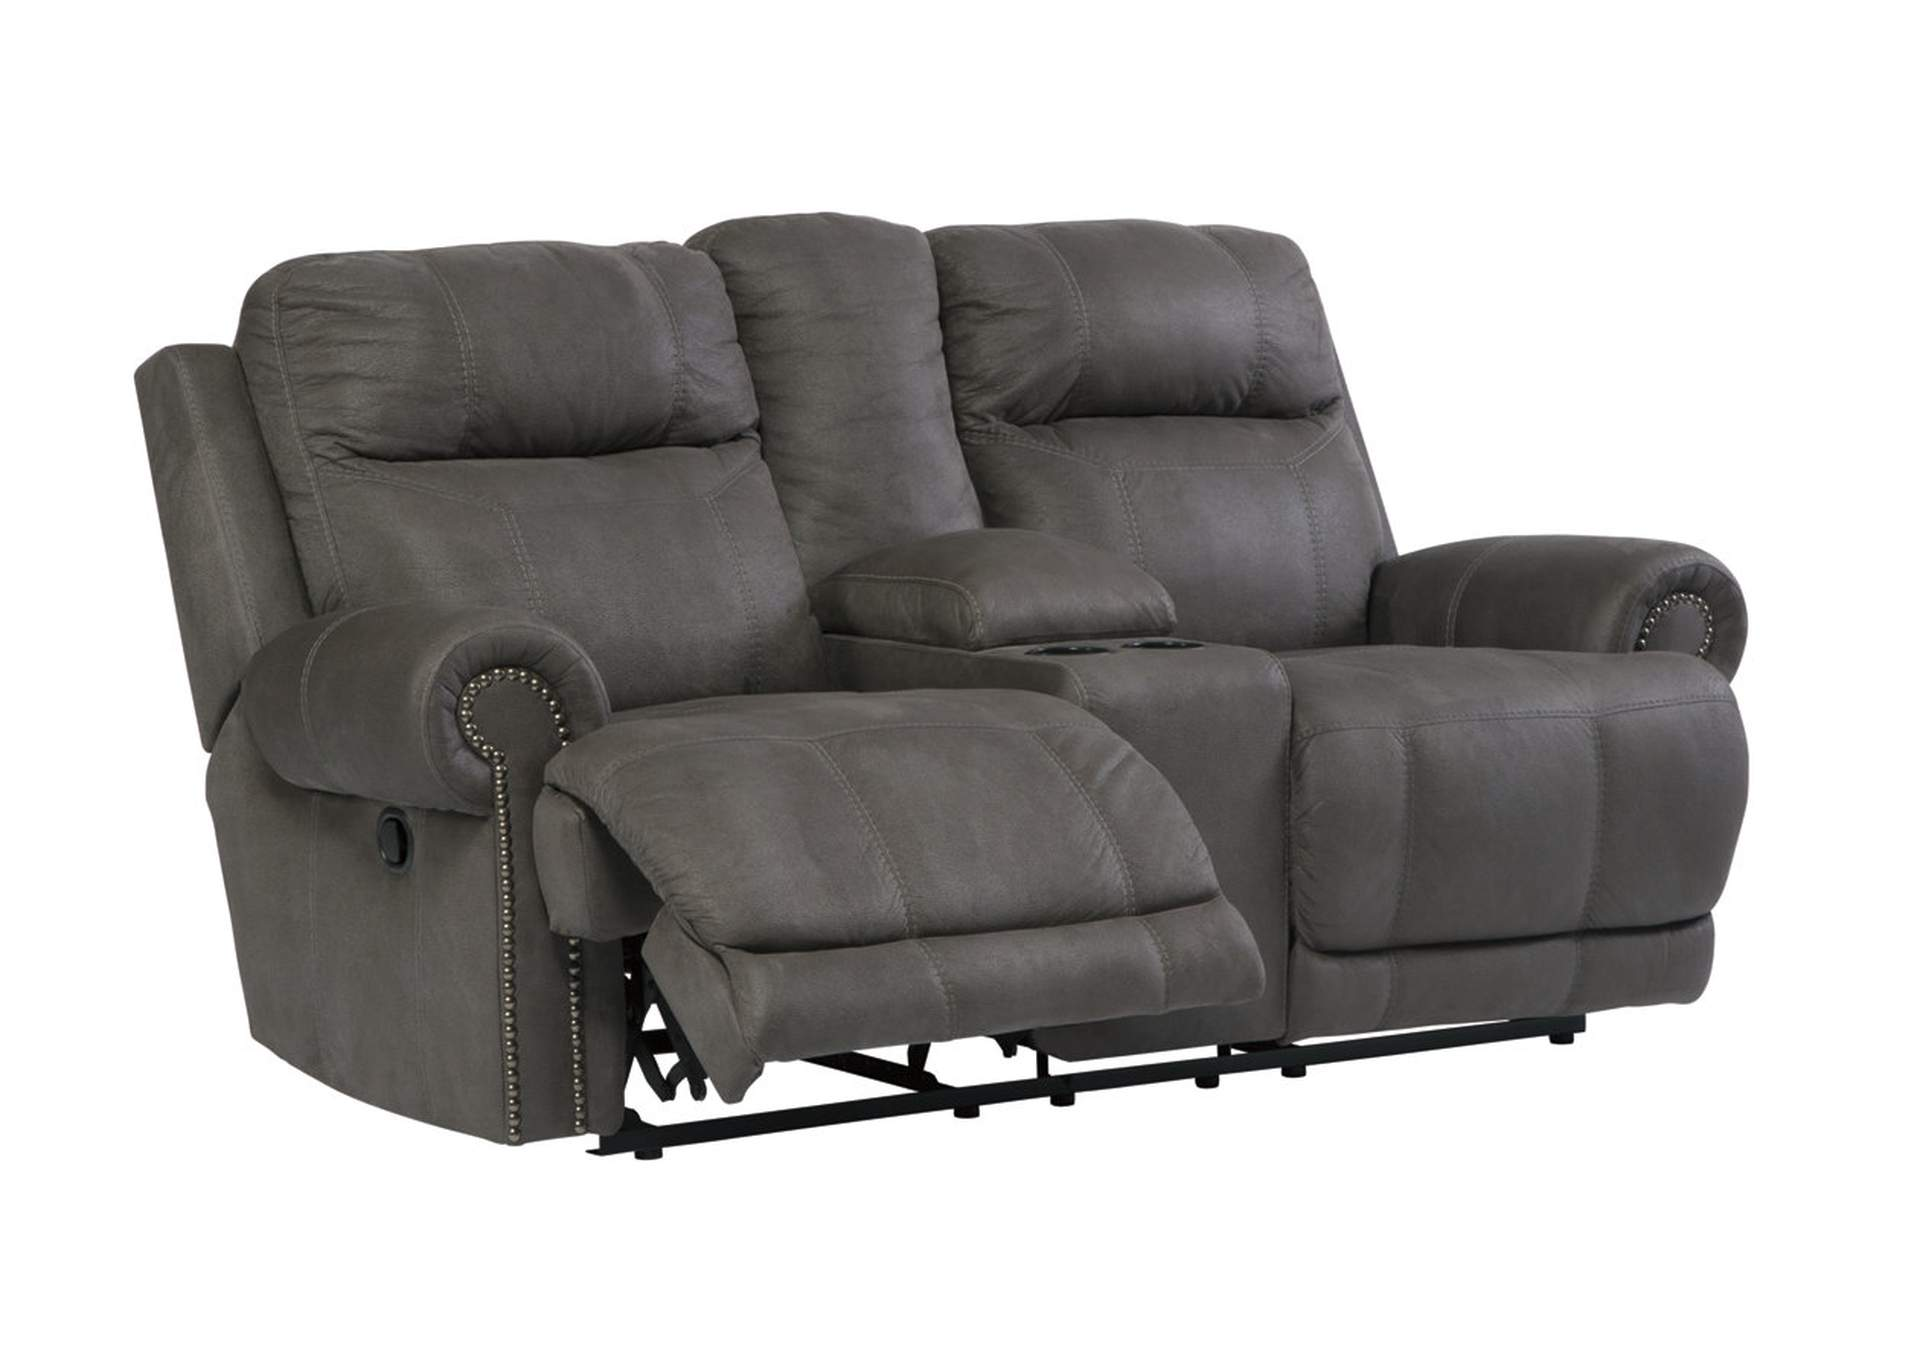 Austere Gray Double Power Reclining Loveseat,Signature Design By Ashley